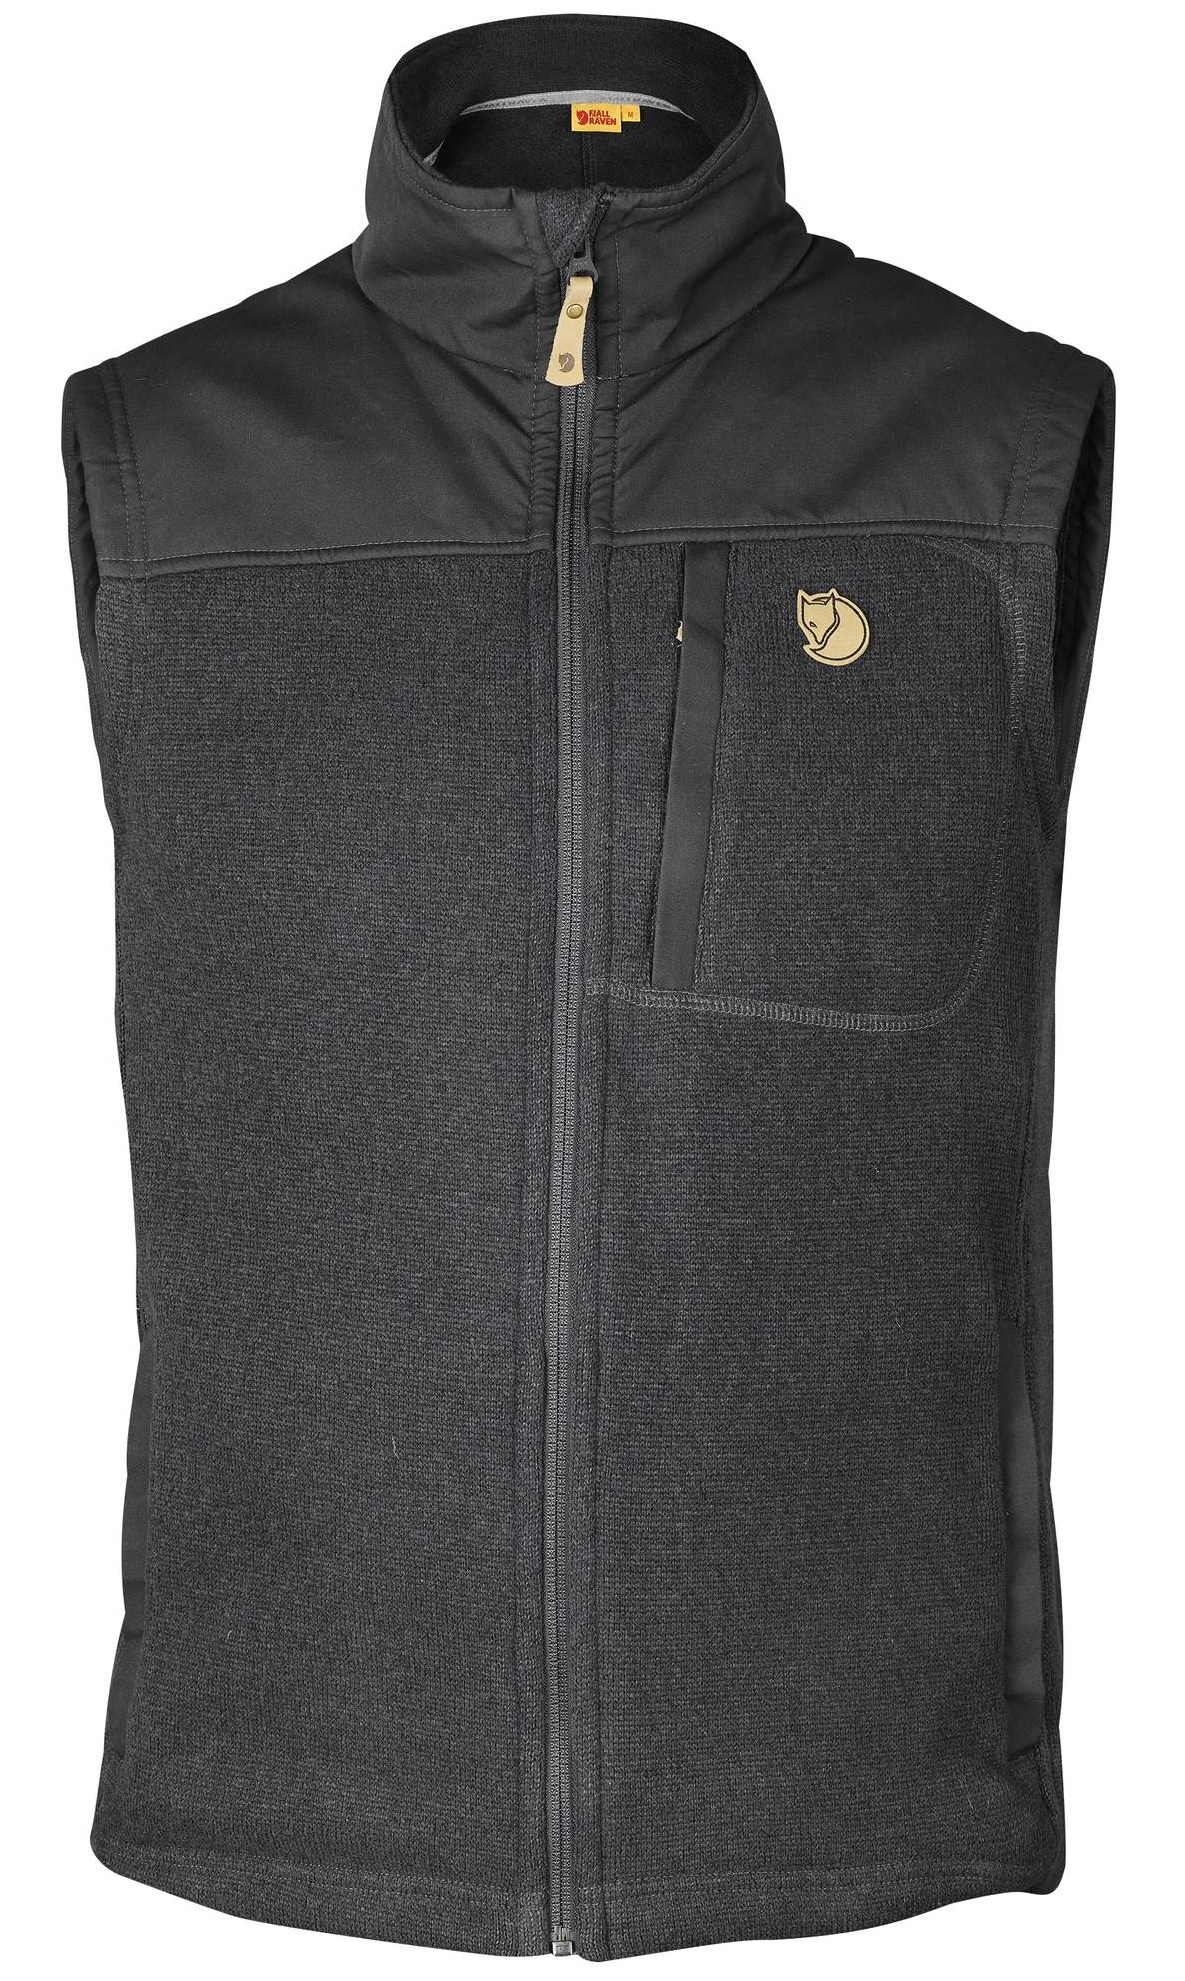 Жилет мужской Fjallraven Buck Fleece Graphite-Dark Grey - Фото 1 большая